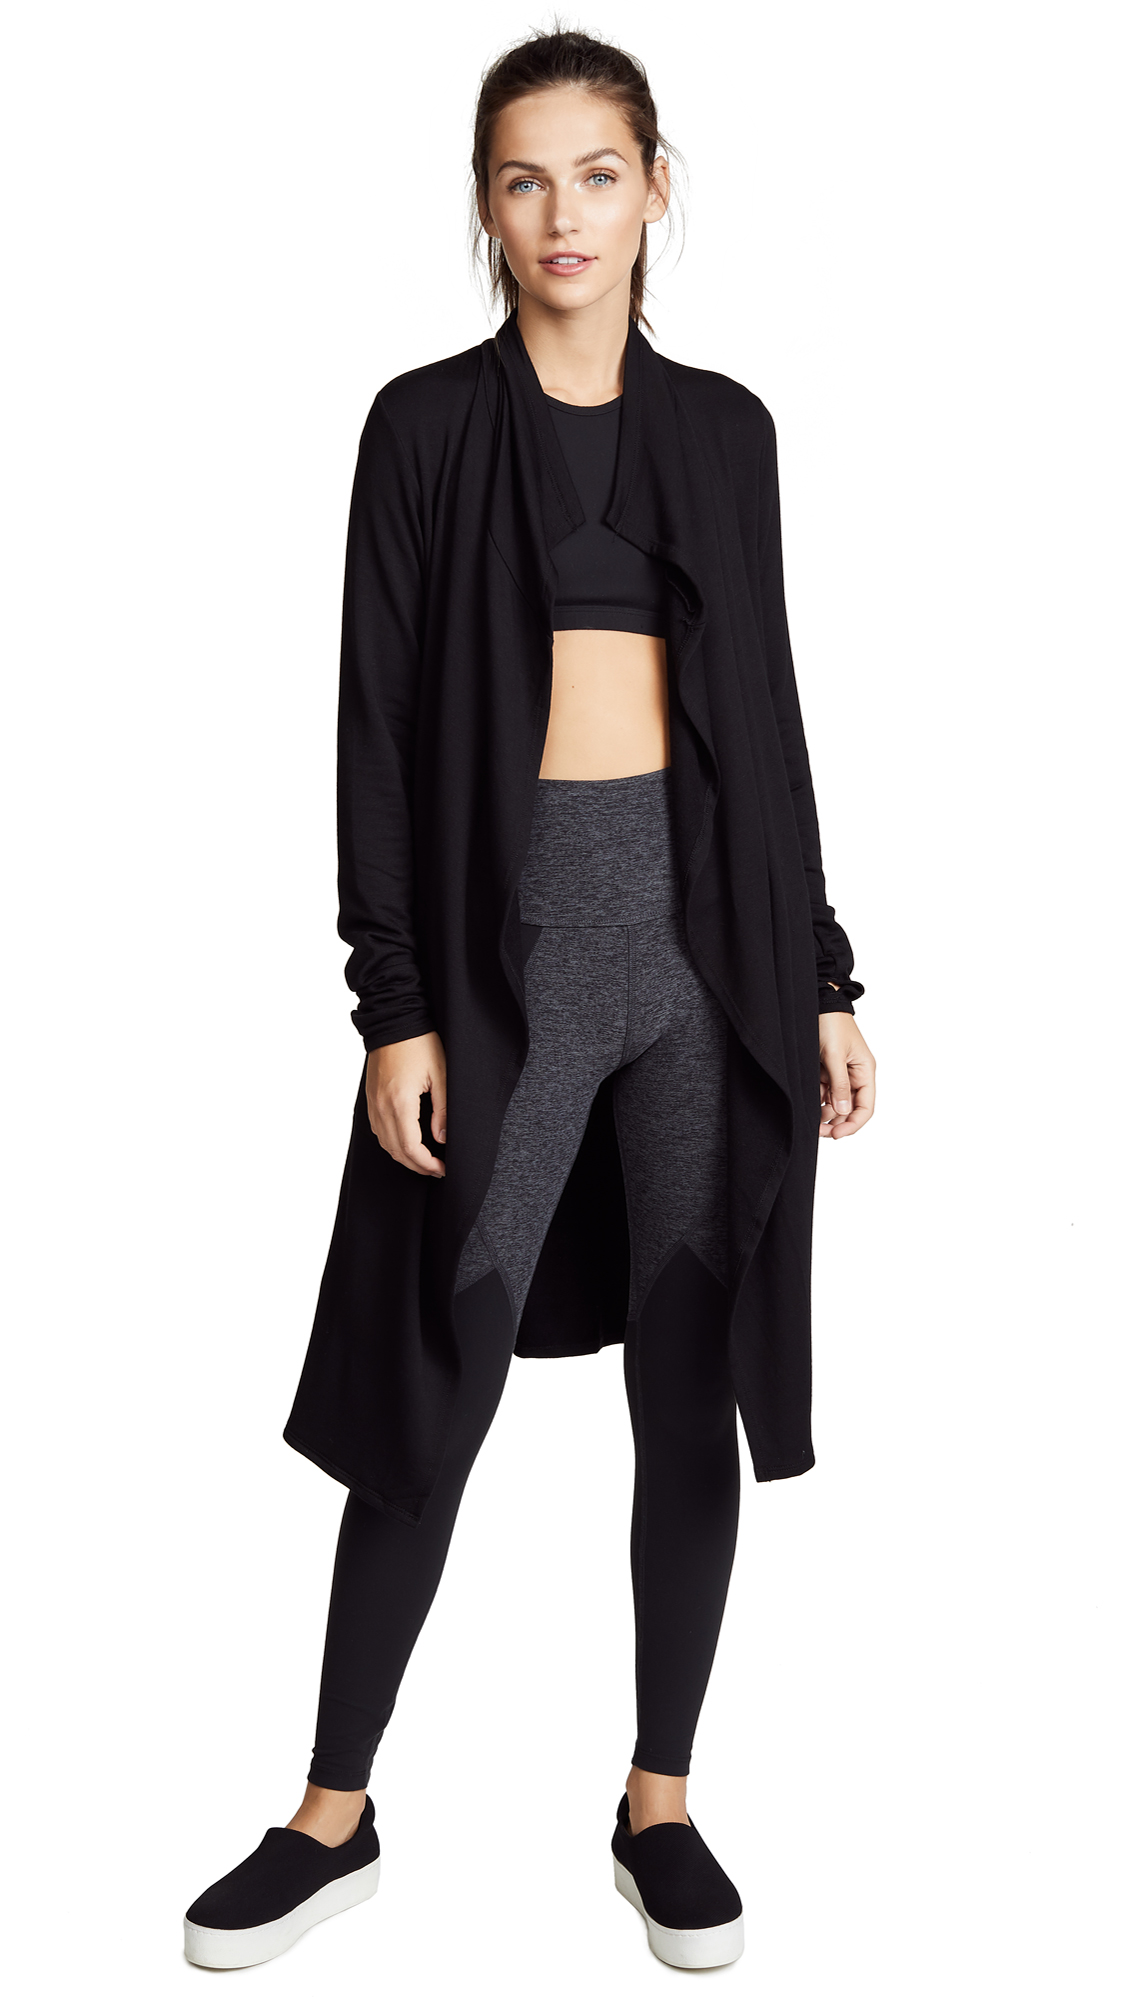 Splits59 Naomi Jacket In Black